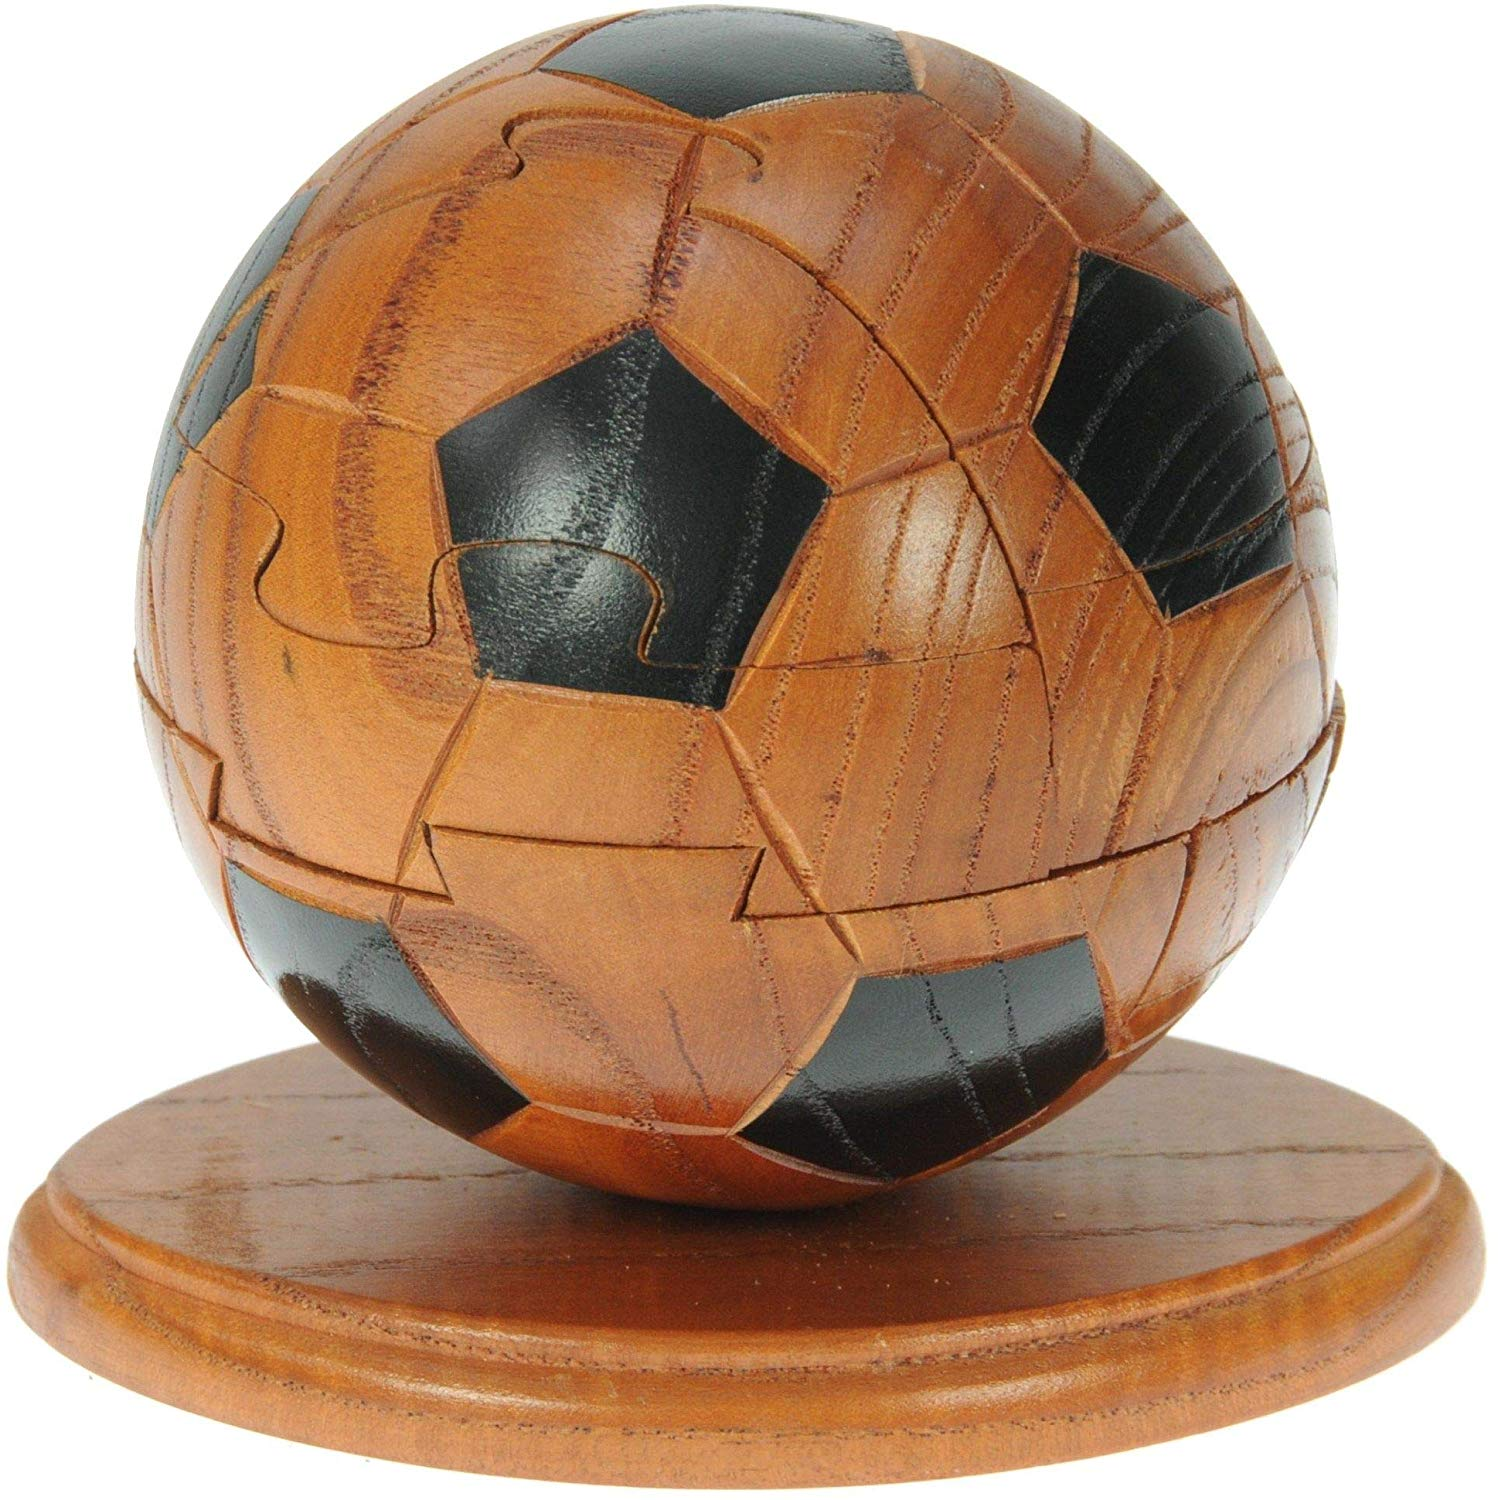 Namesakes Football 3D Jigsaw Puzzle for Grown Ups and Children